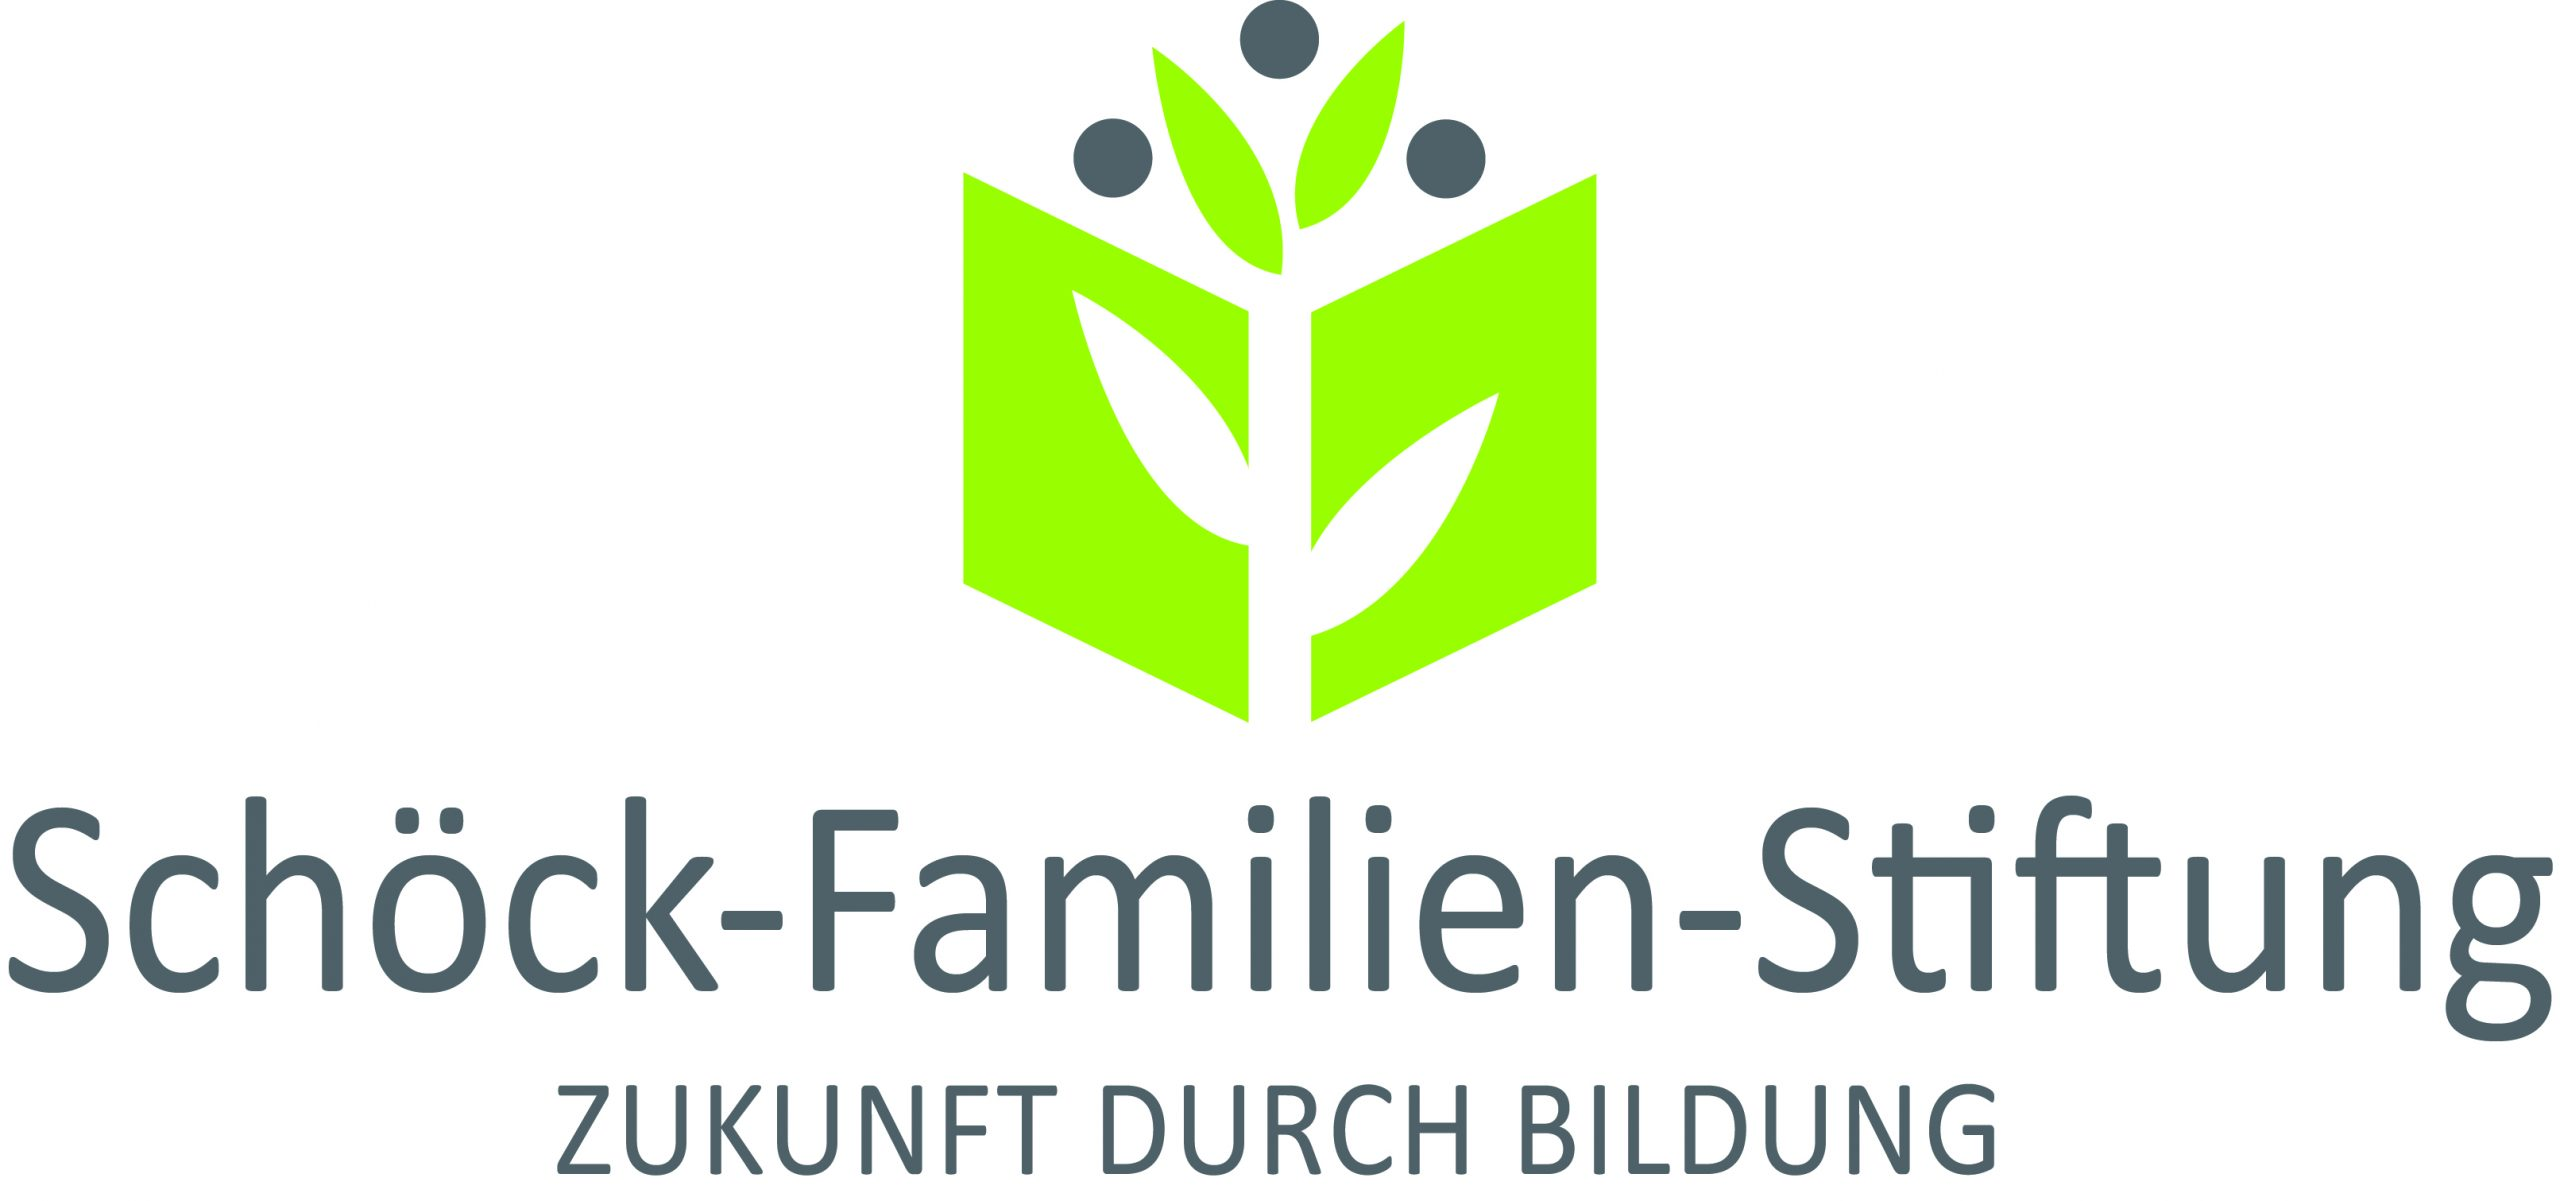 Schoeck-Familien-Stiftung